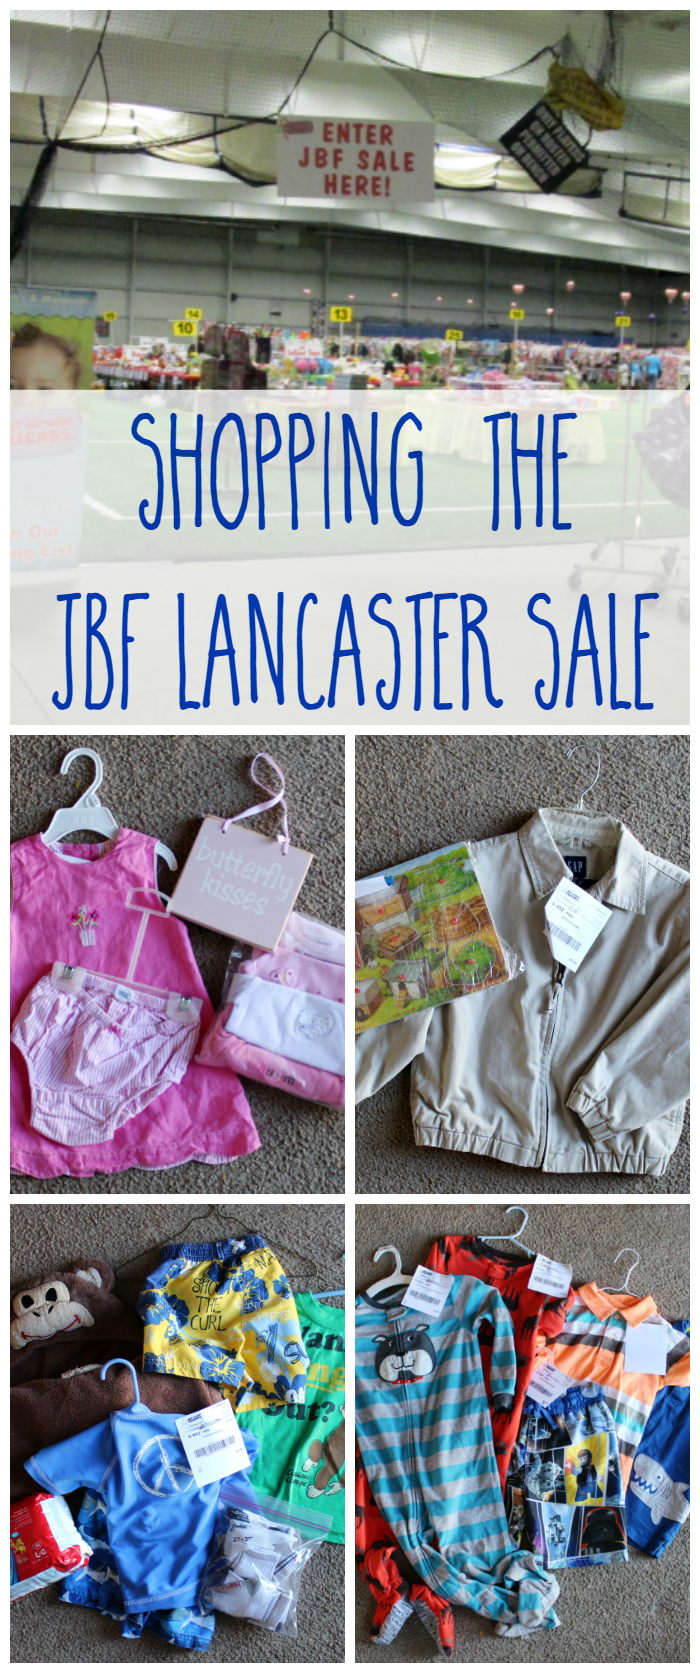 Shopping at the JBFLancaster Sale - I love shopping consignment! Check out the great deals we got at the Just Between Friends sale in Lancaster!